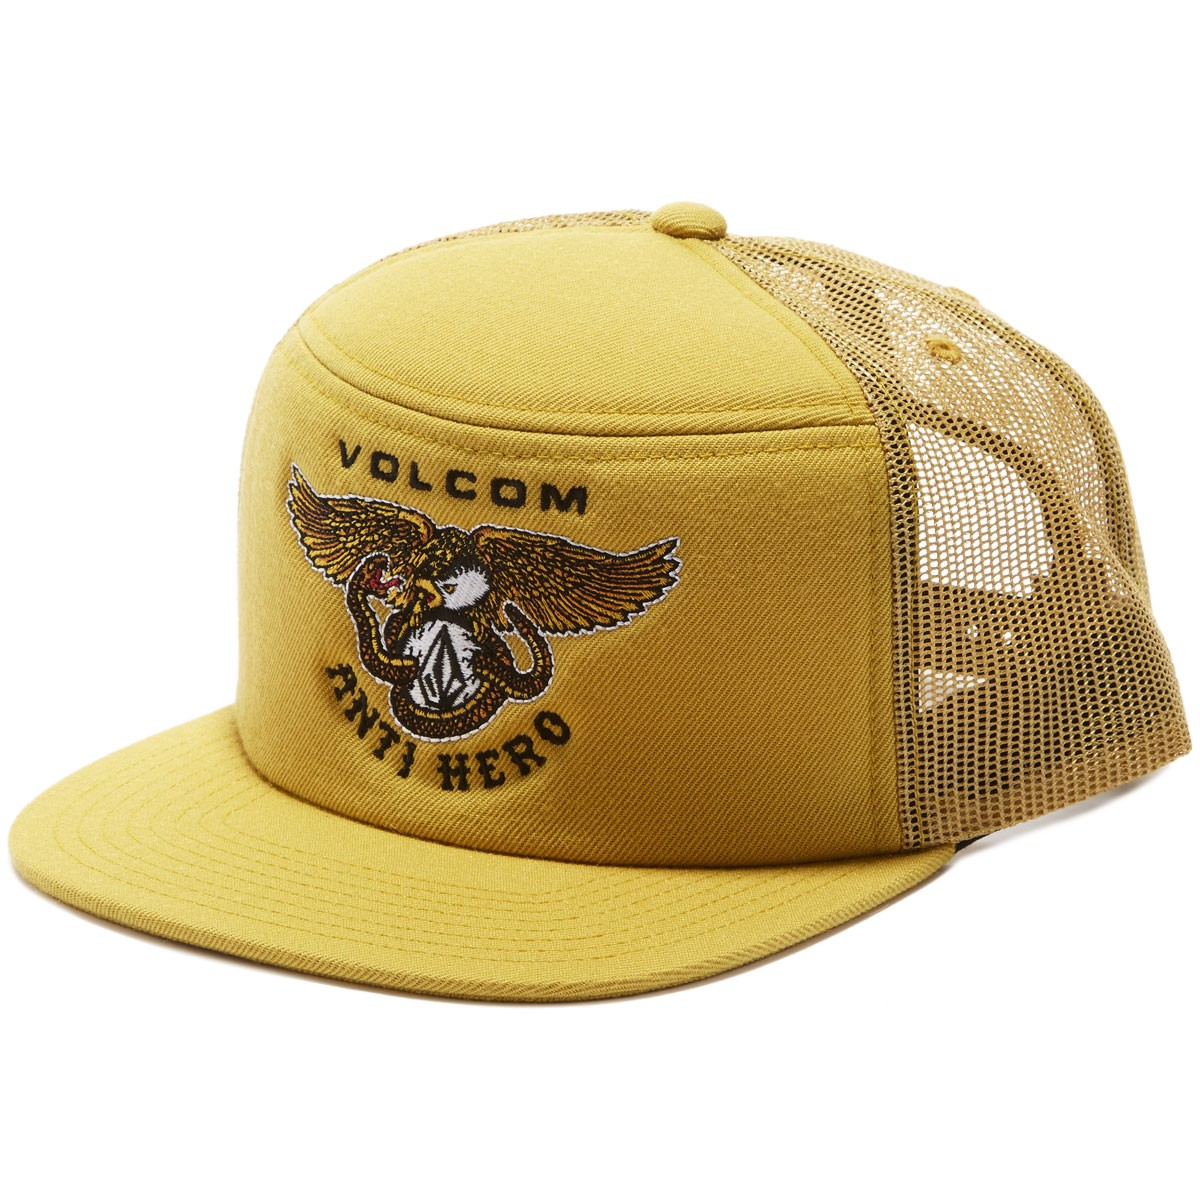 281fee3a Volcom X Anti Hero Stach Trucker Hat - Dull Gold